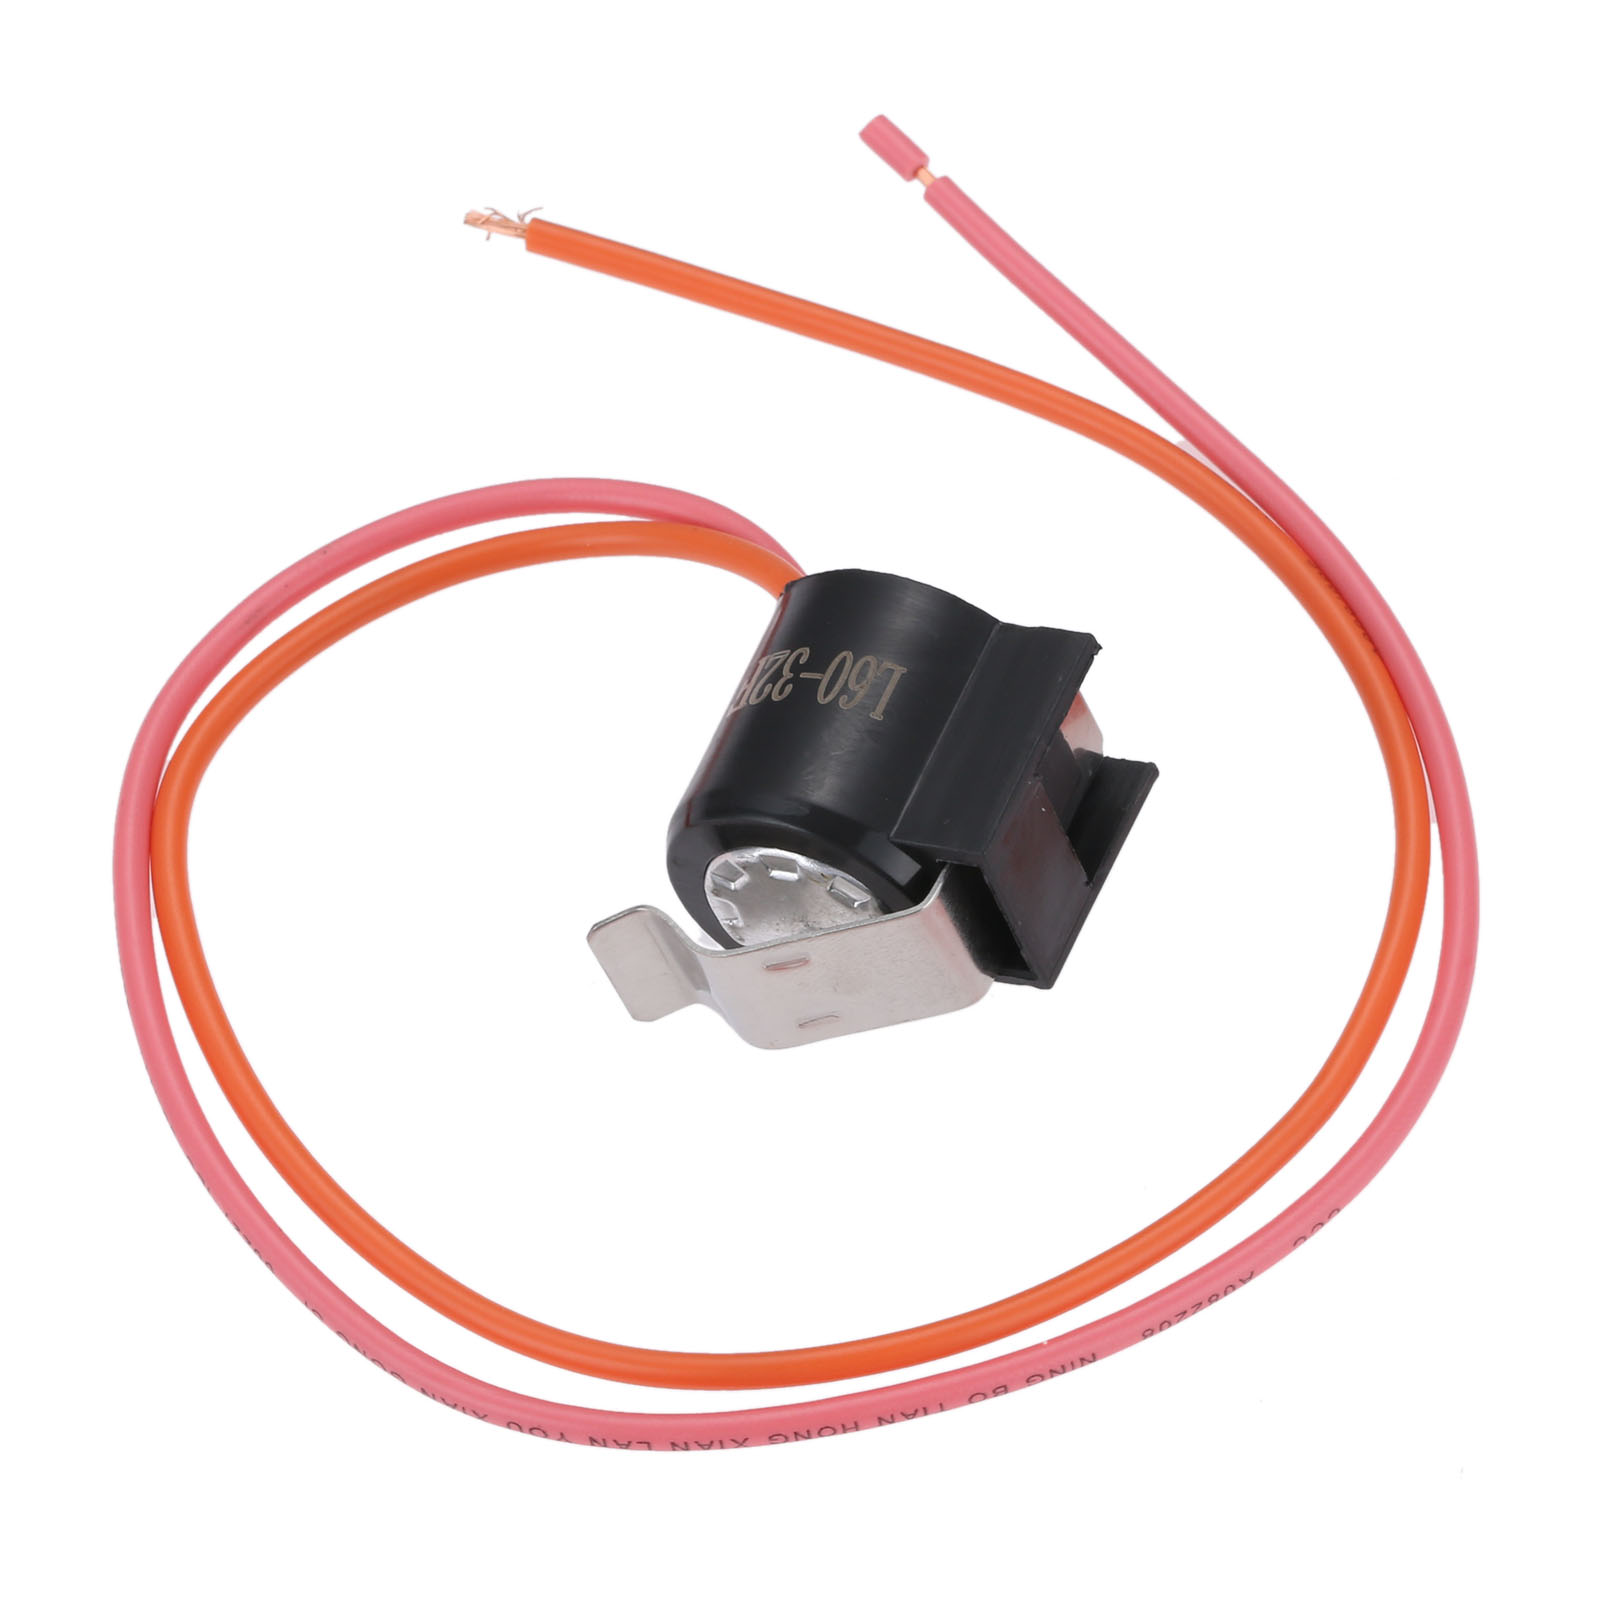 WR50X122 Defrost Thermostat Fit For GE Hotpoint RCA WR50X10014 2387 AH303471